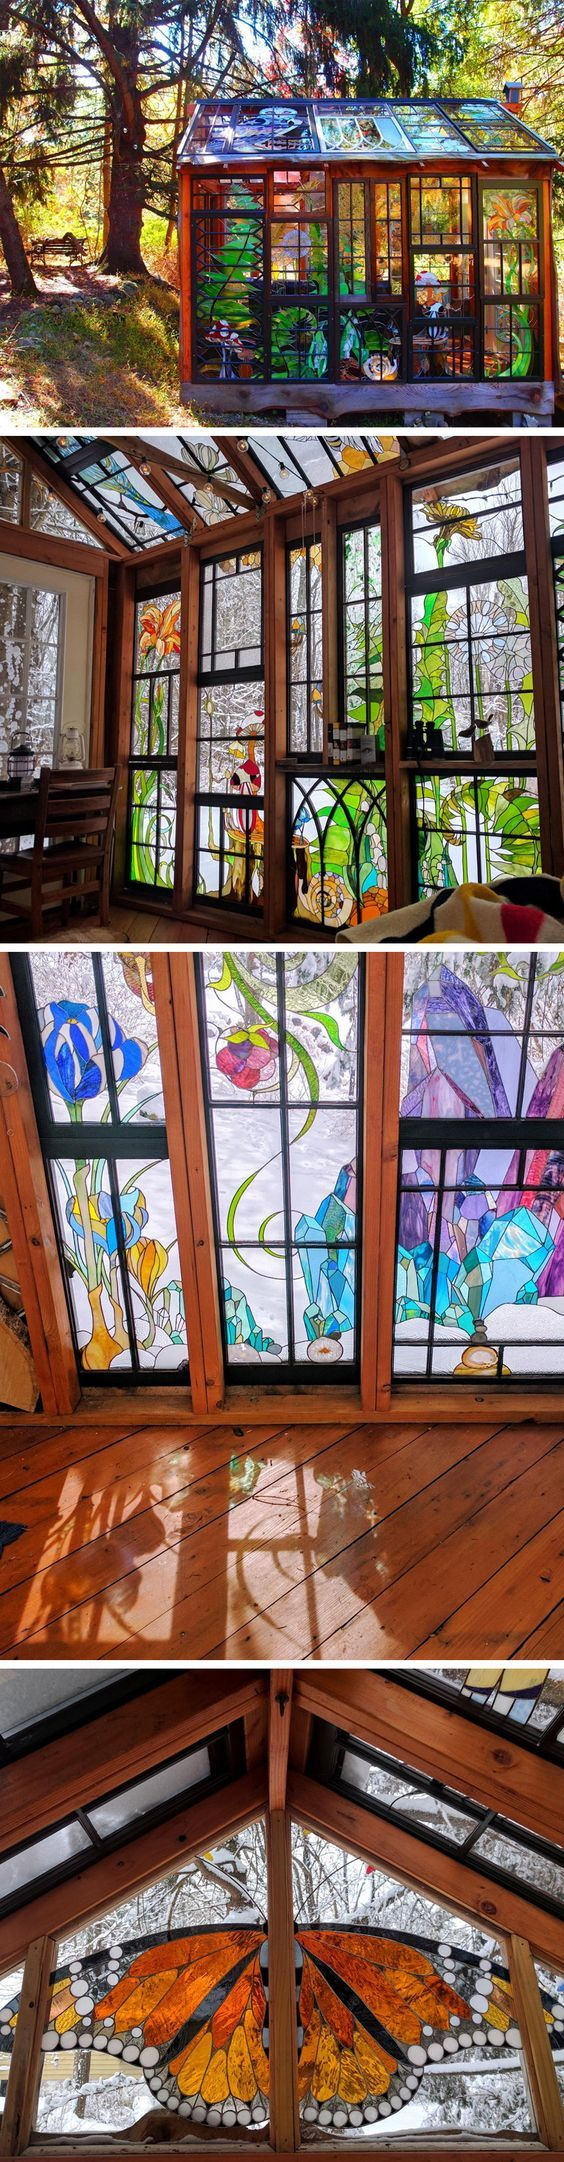 Beach theme decoration stained glass window panels arts crafts - A Stained Glass Cabin Hidden In The Woods By Neile Cooper